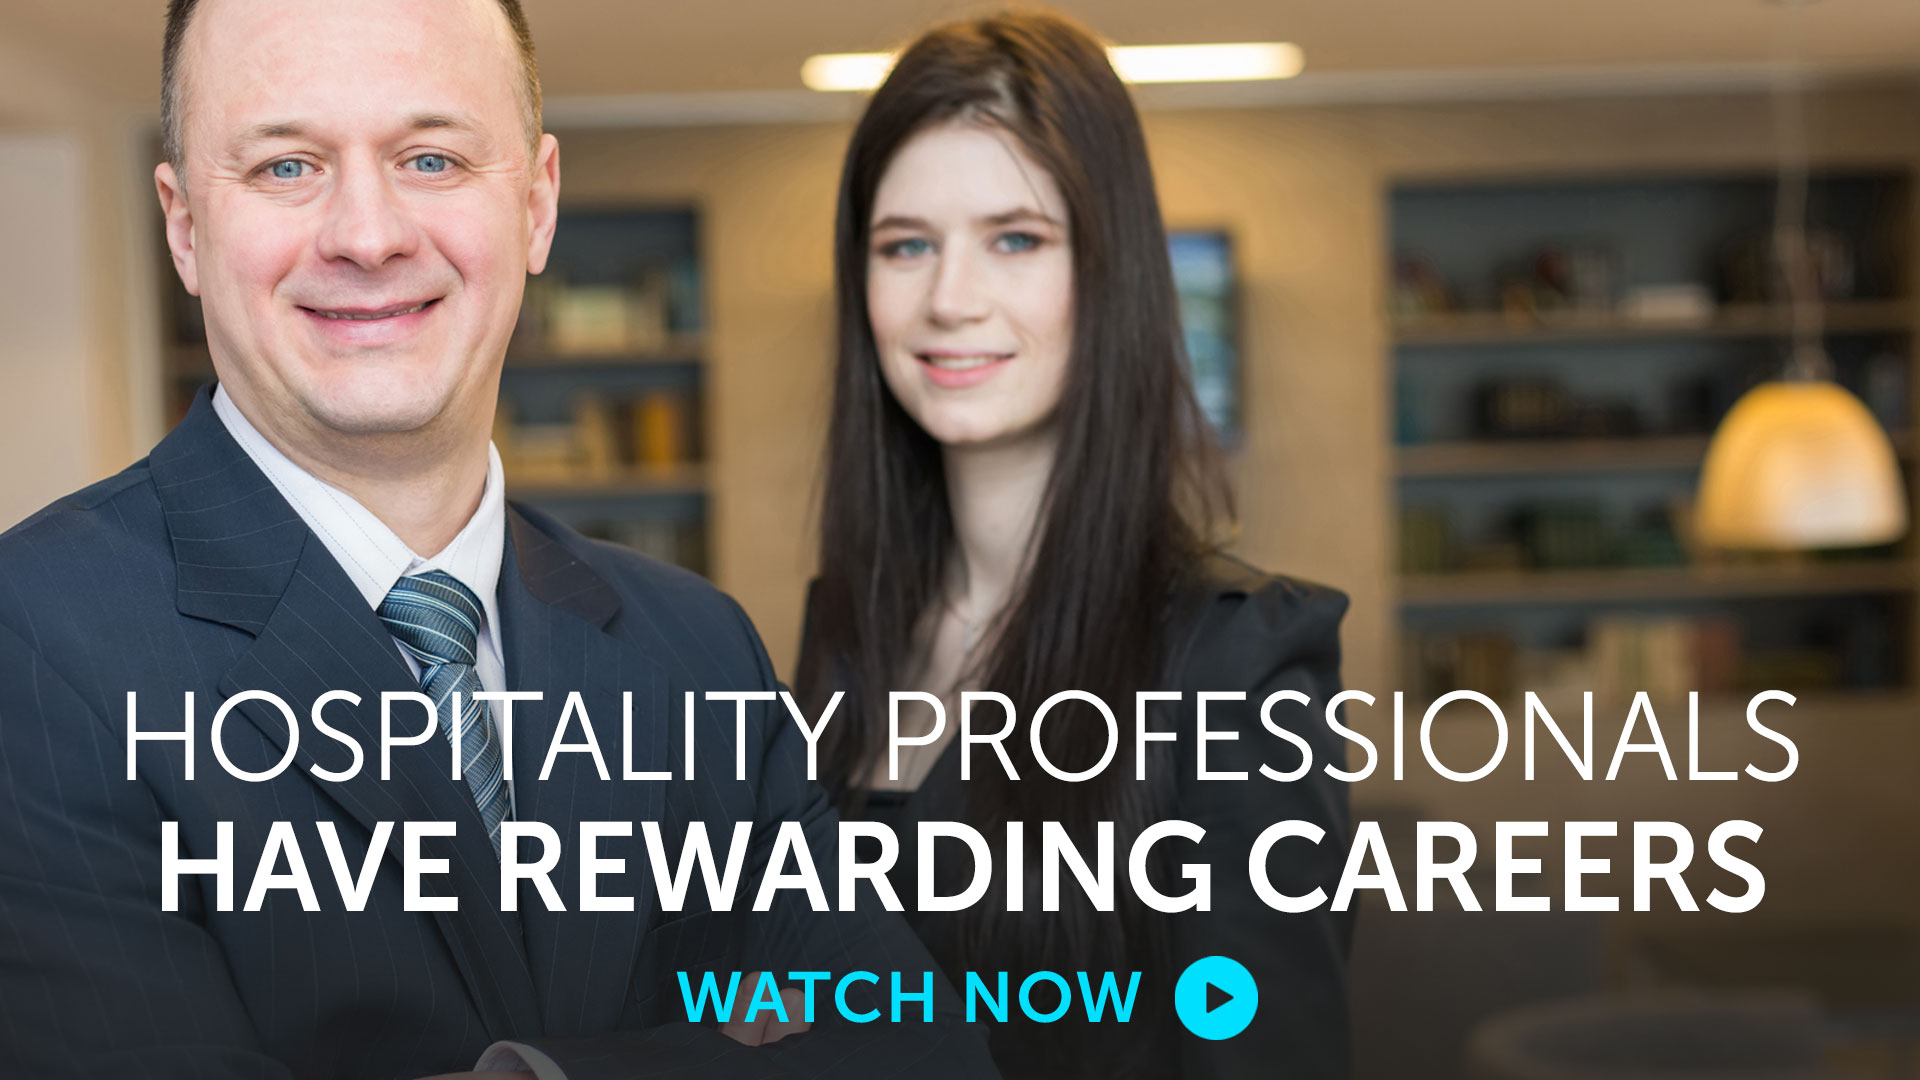 Briefing: Hospitality professionals have rewarding careers